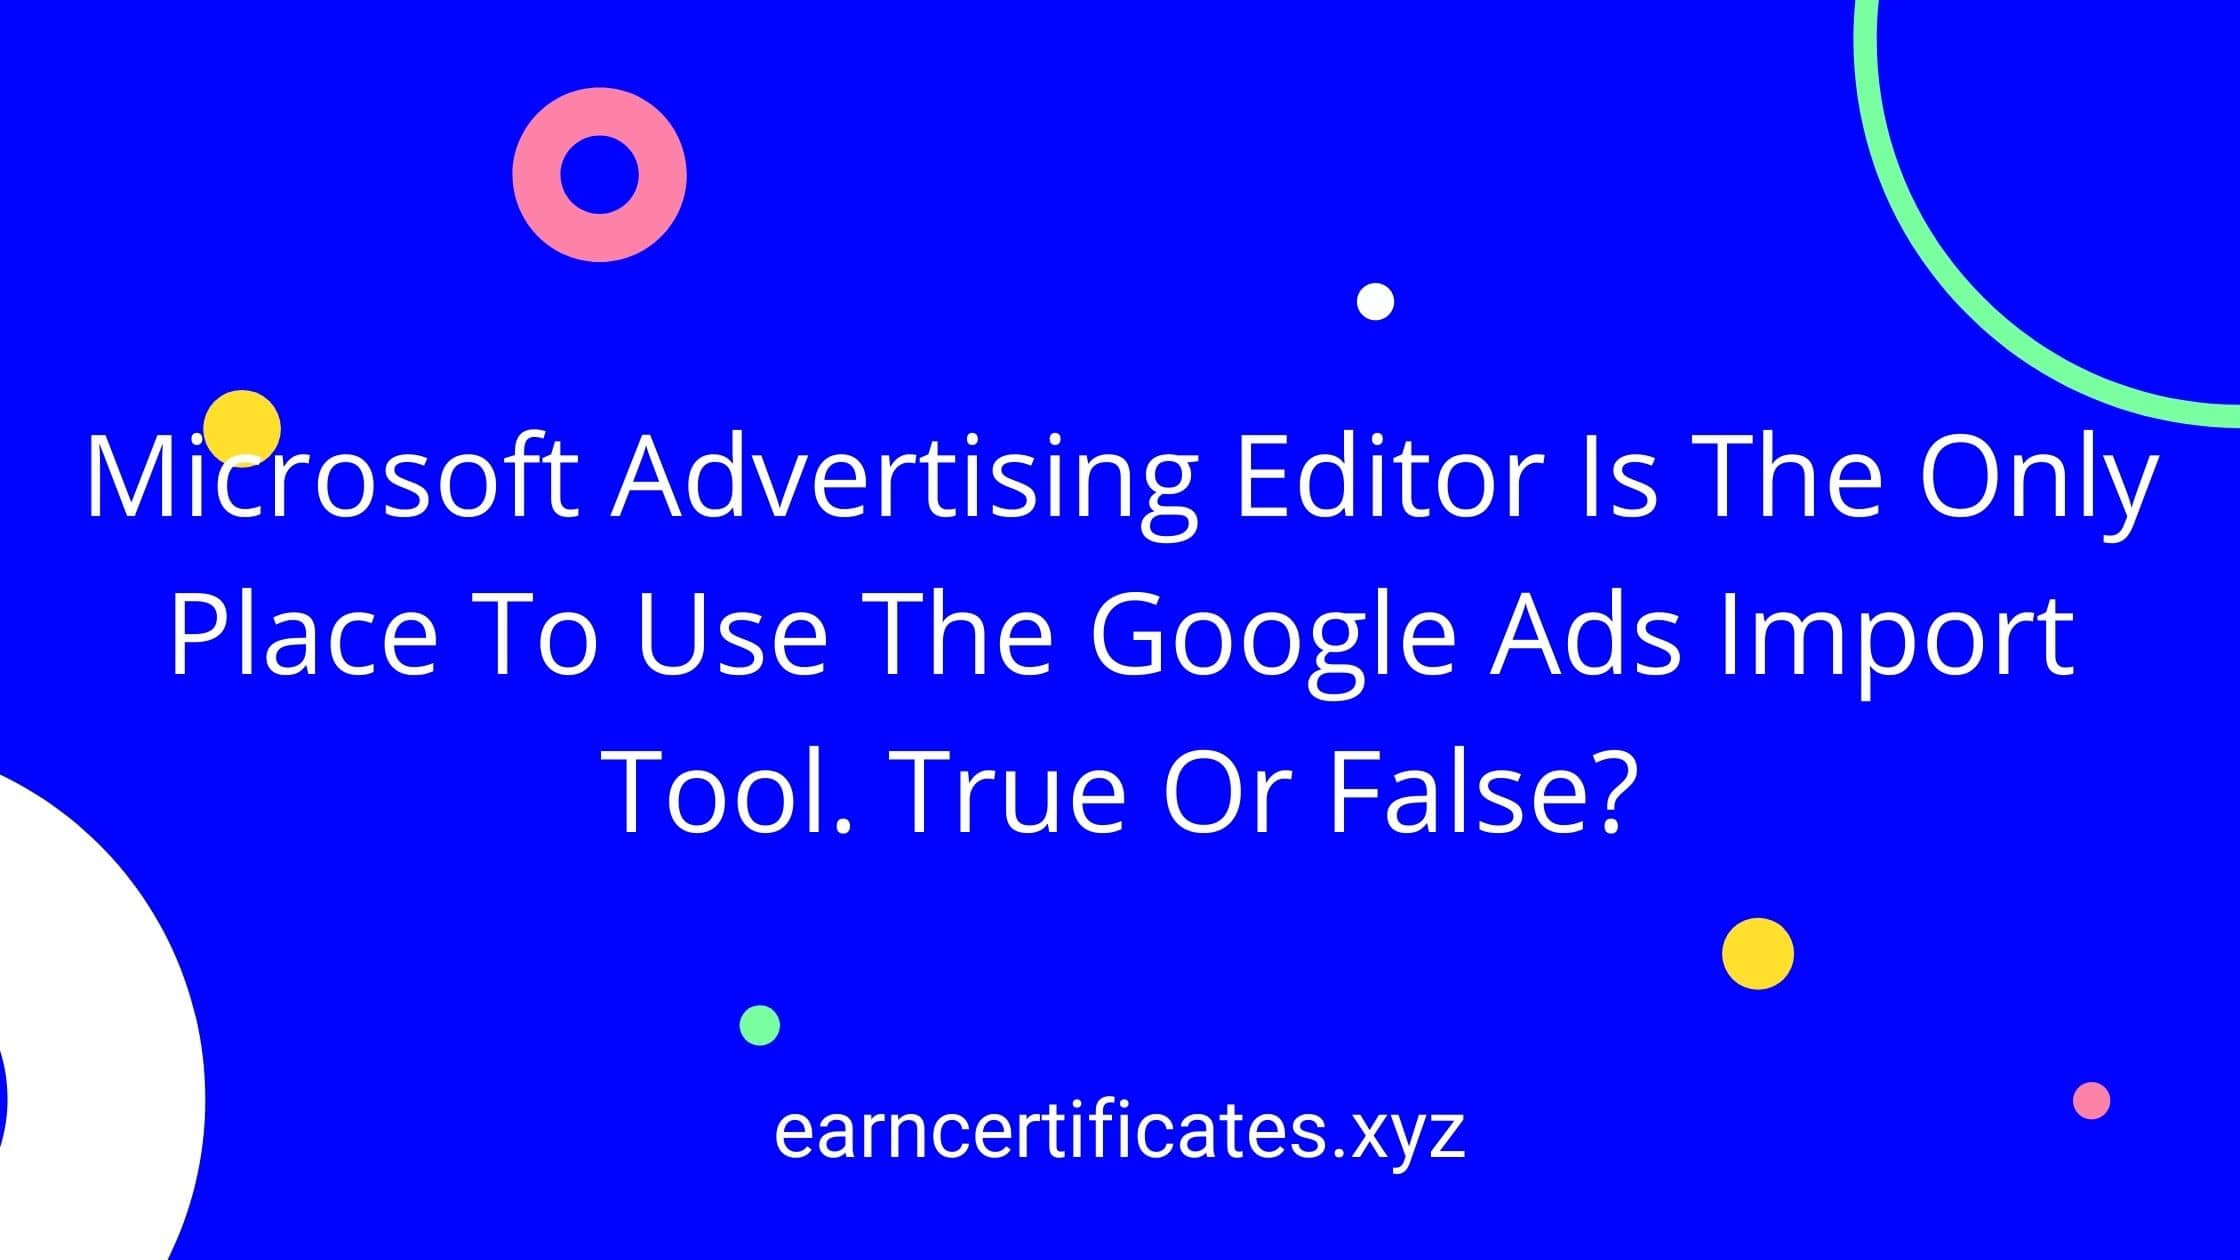 Microsoft Advertising Editor Is The Only Place To Use The Google Ads Import Tool. True Or False?